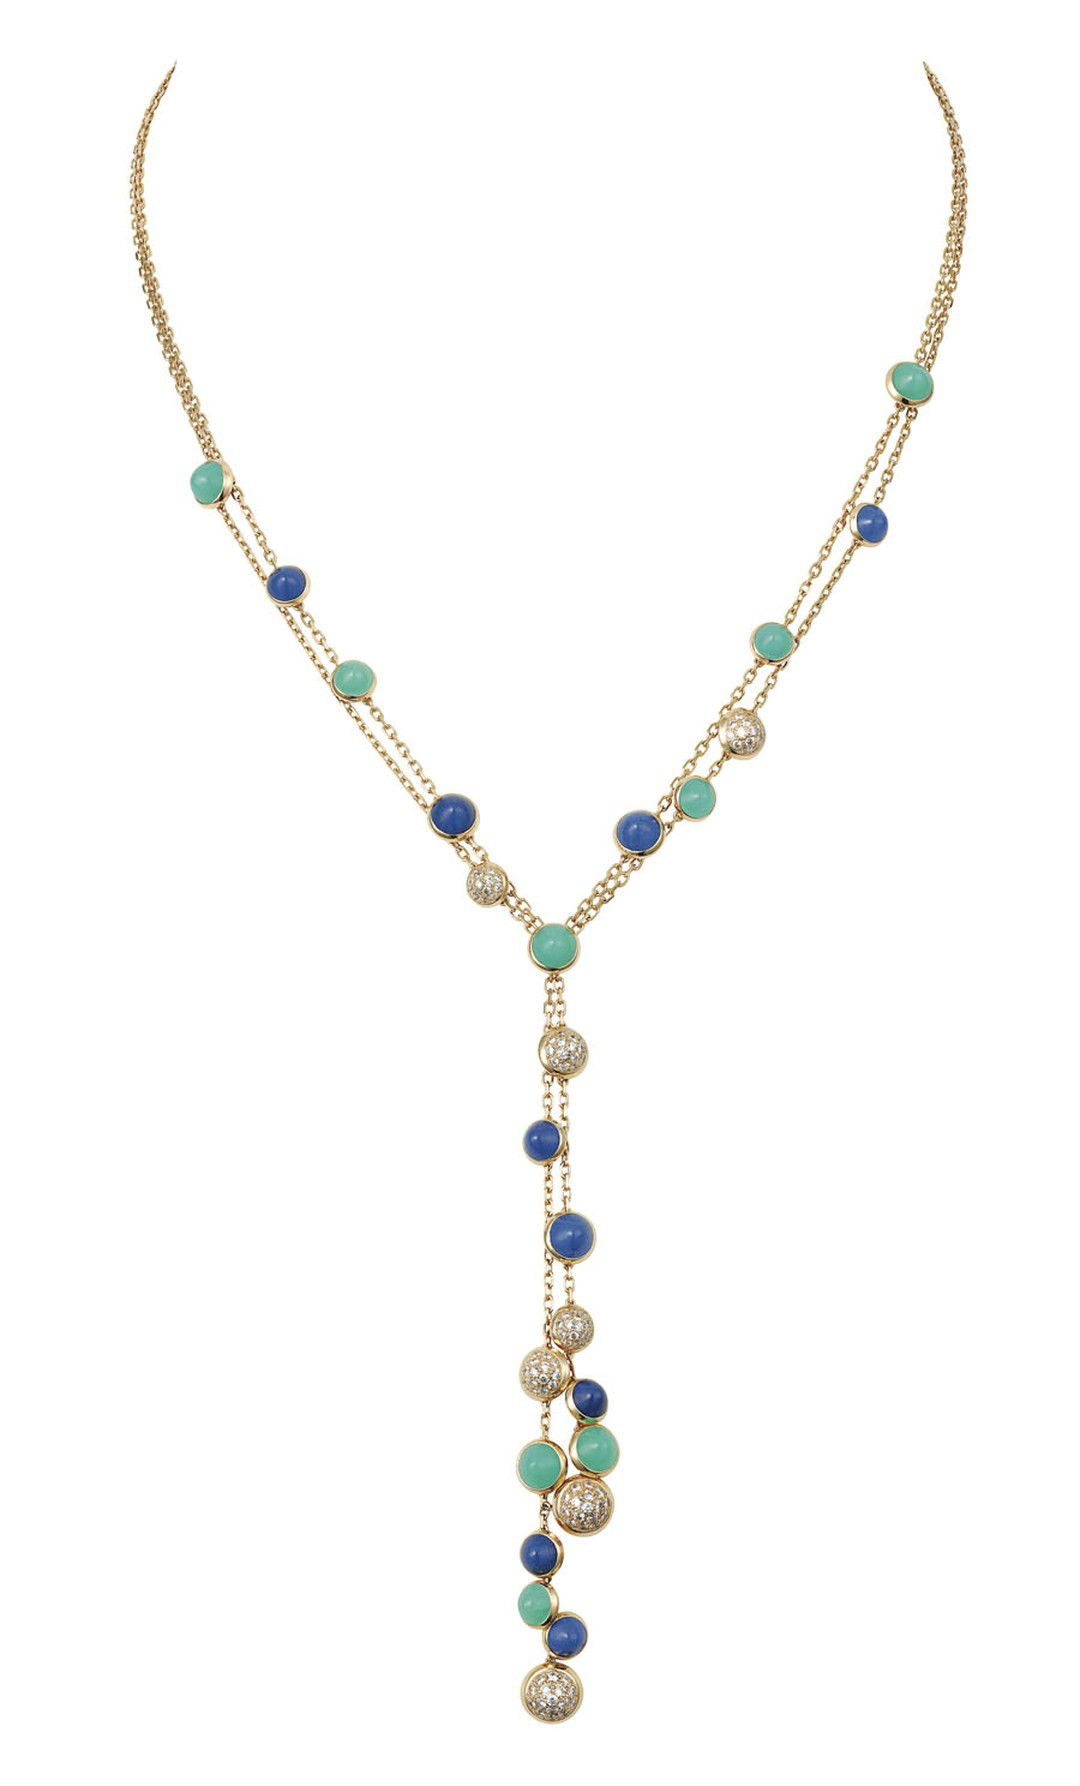 Cartier Paris Nouvelle Vague 'Mischievous' necklace in yellow gold, set with lapis lazuli, chrysoprase and diamonds.